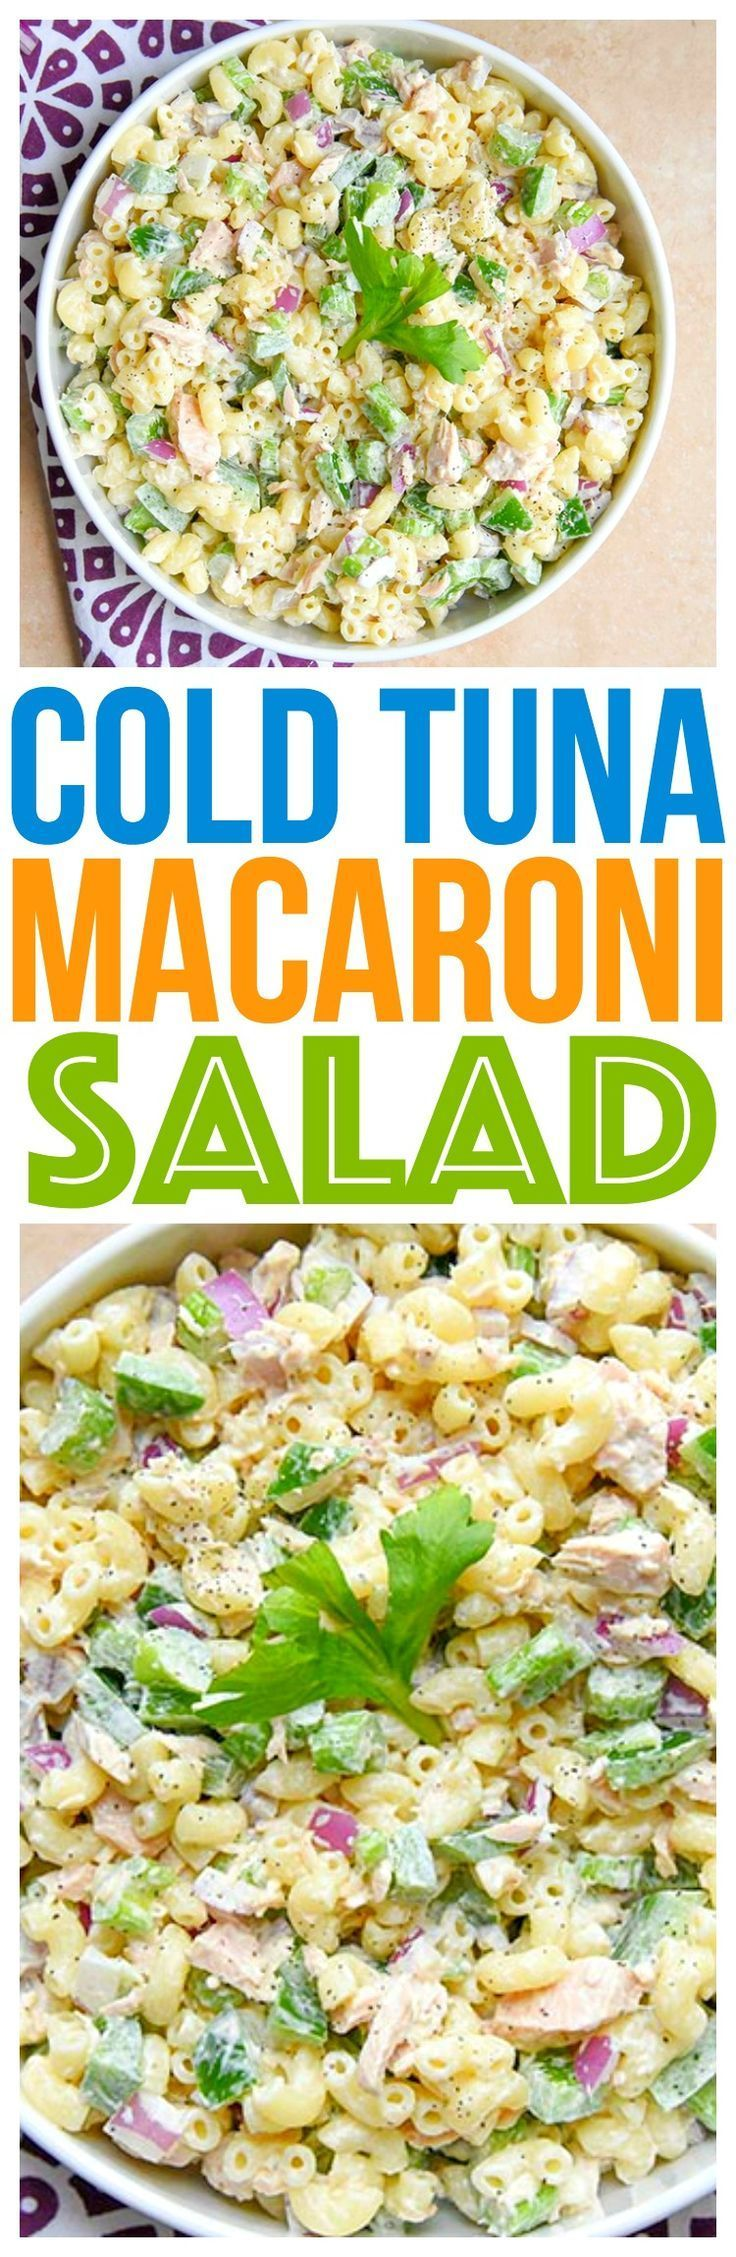 This cold tuna macaroni salad is the perfect potluck side dish and it's one of our family favorite easy holiday recipes - entertaining food  via @CourtneysSweets